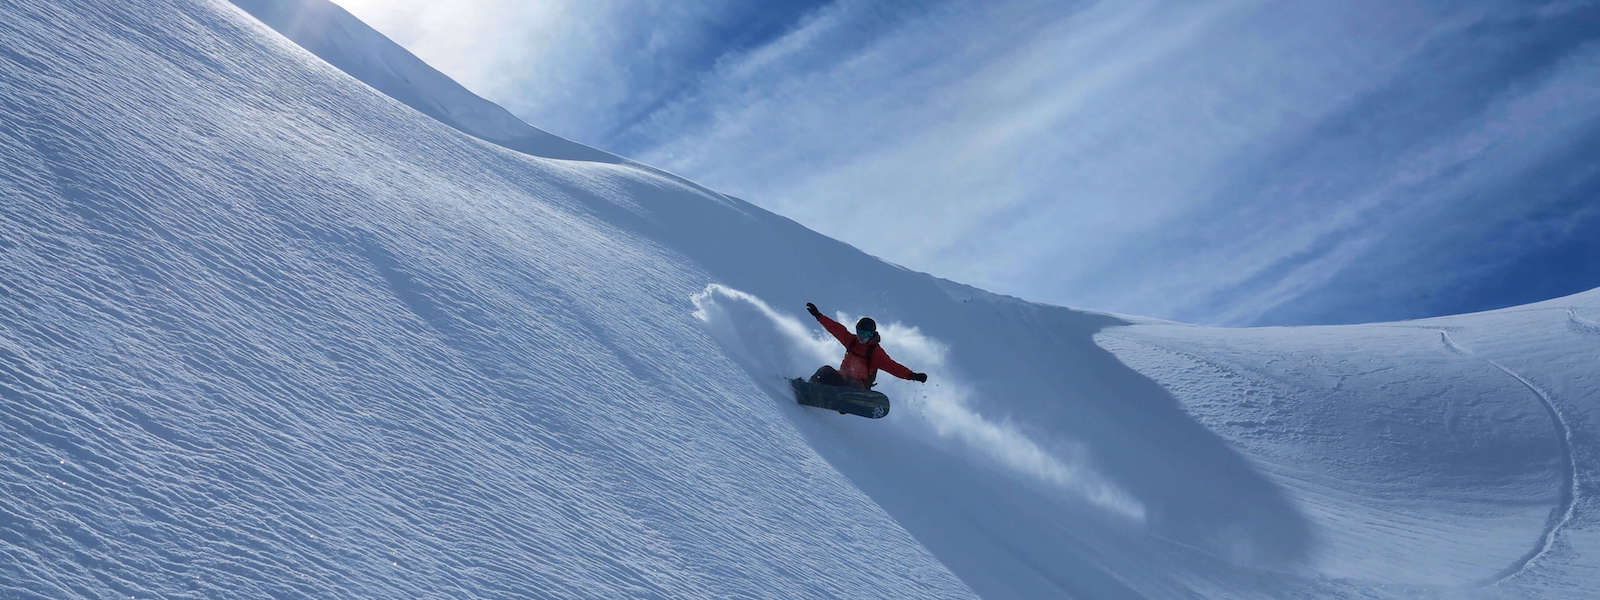 chile snowboarding in august